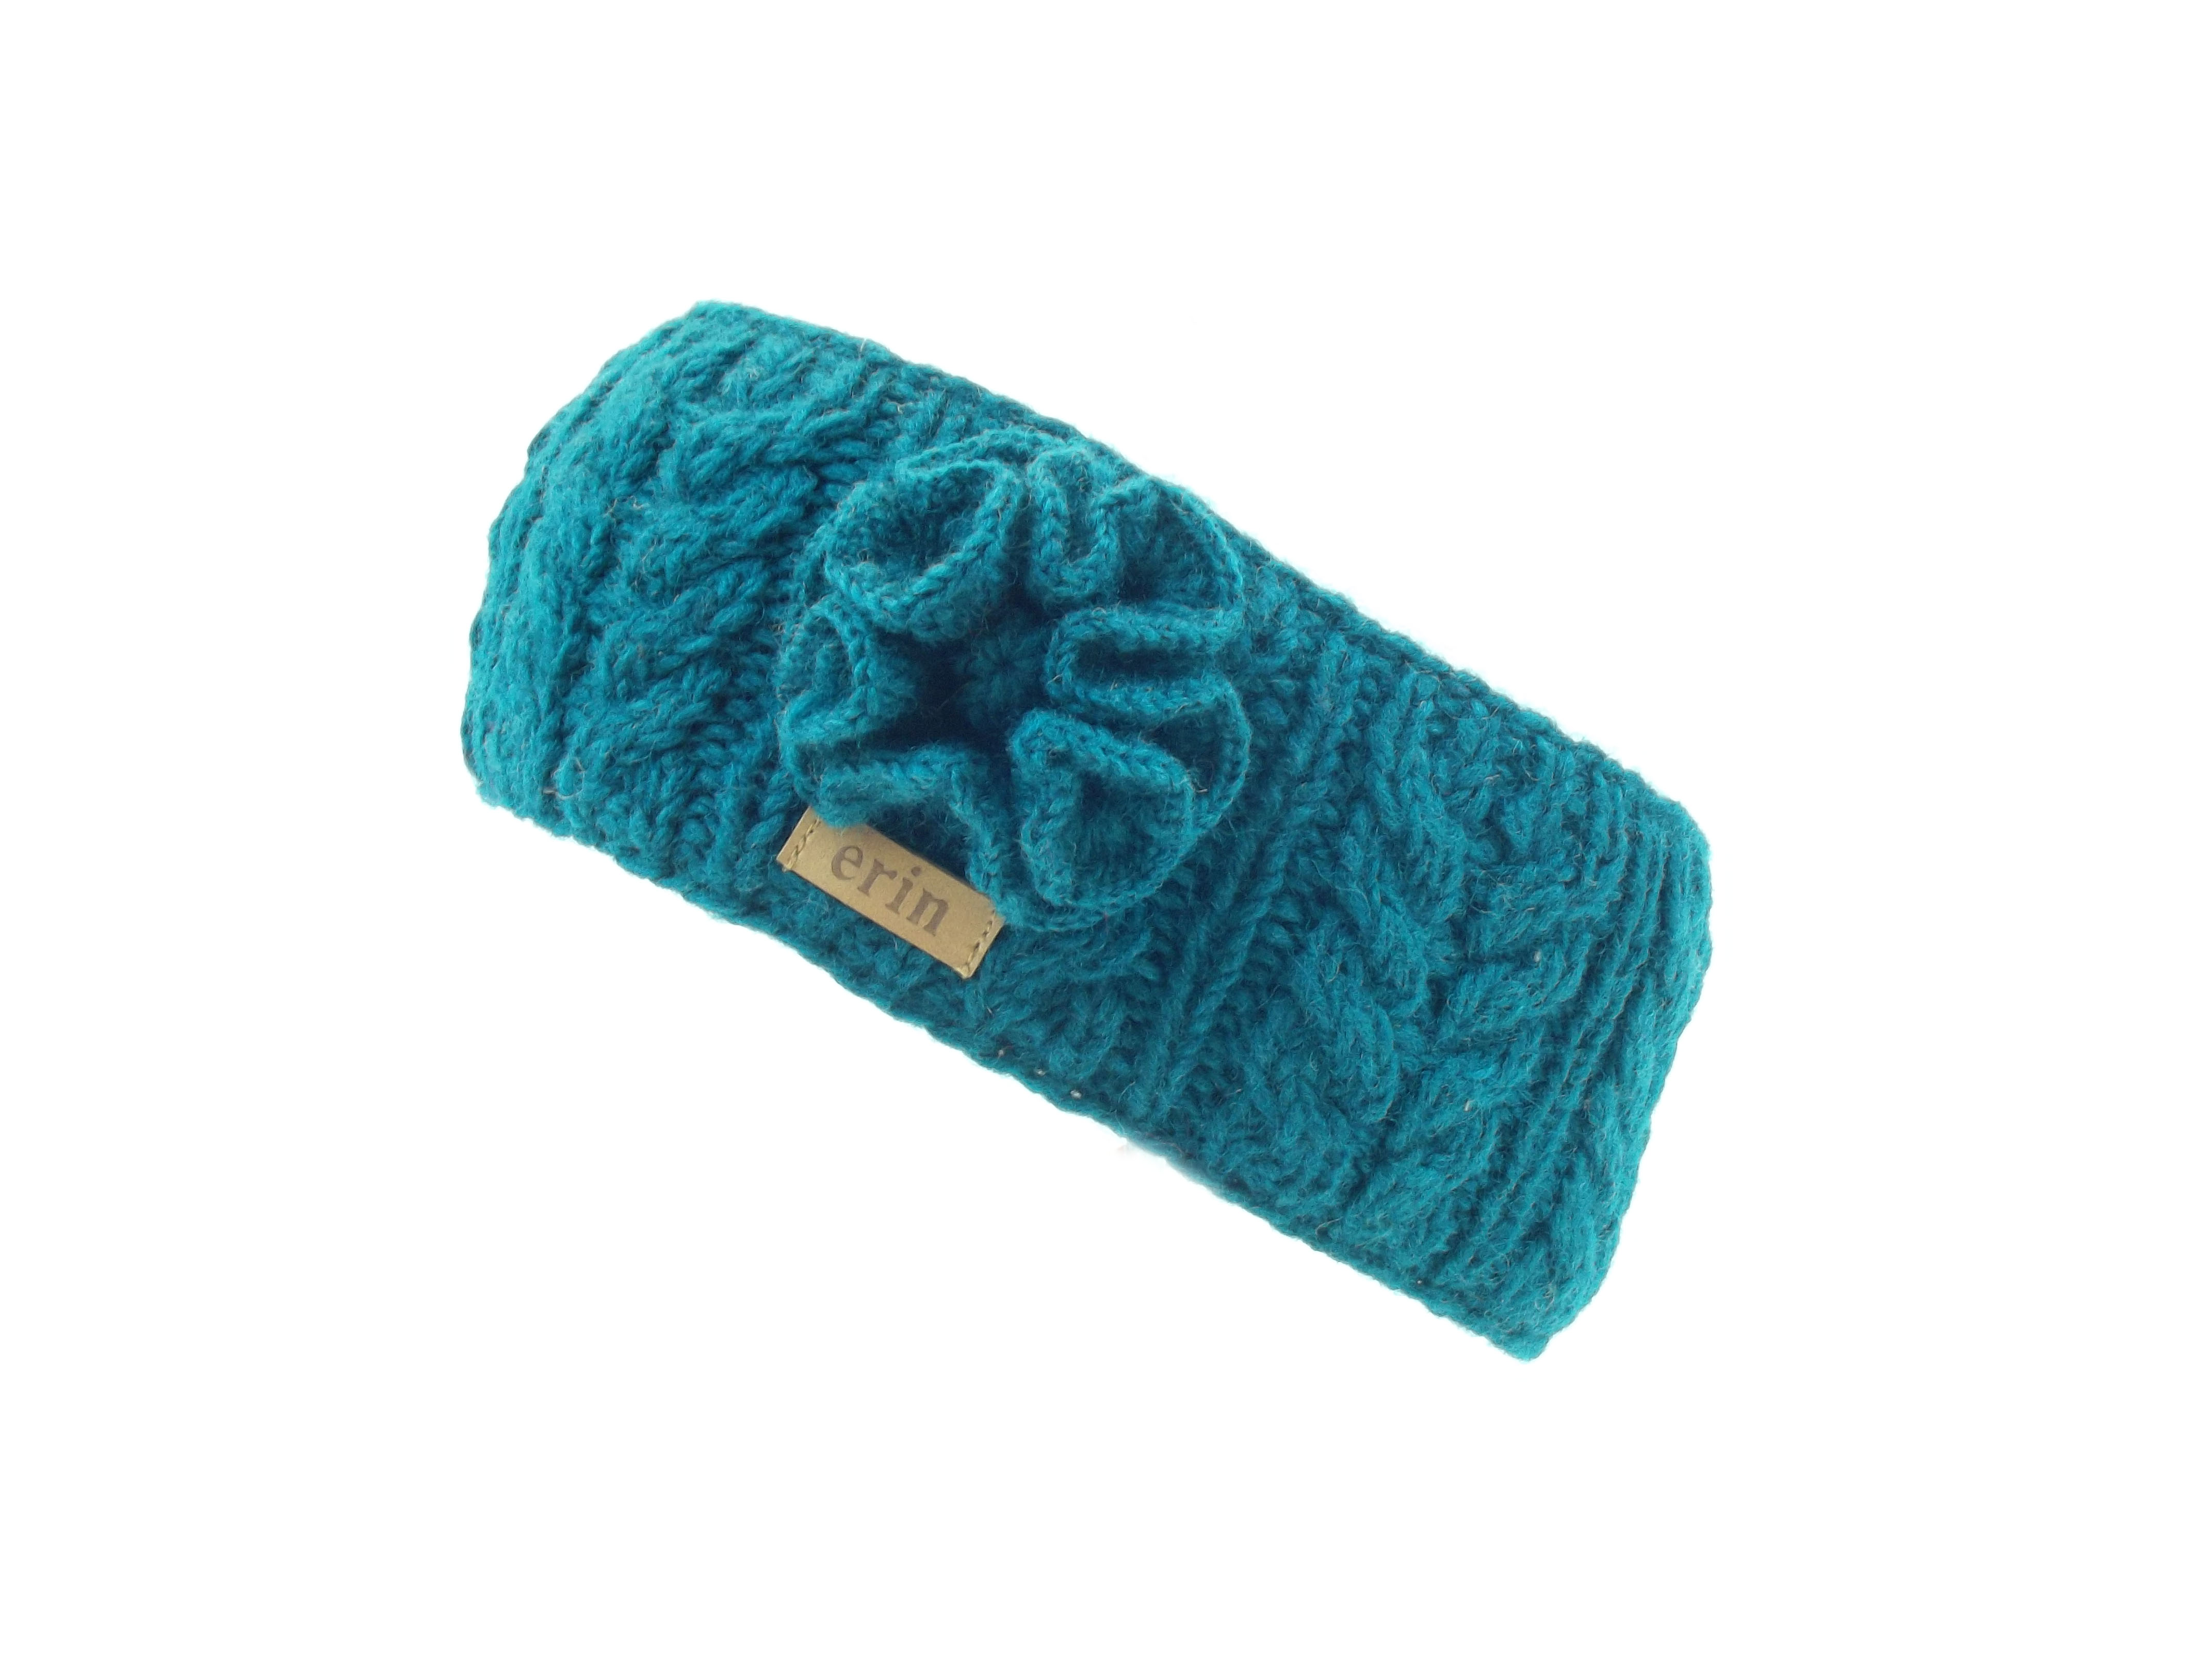 Aran Cable Headband with Flower Teal 100% Wool